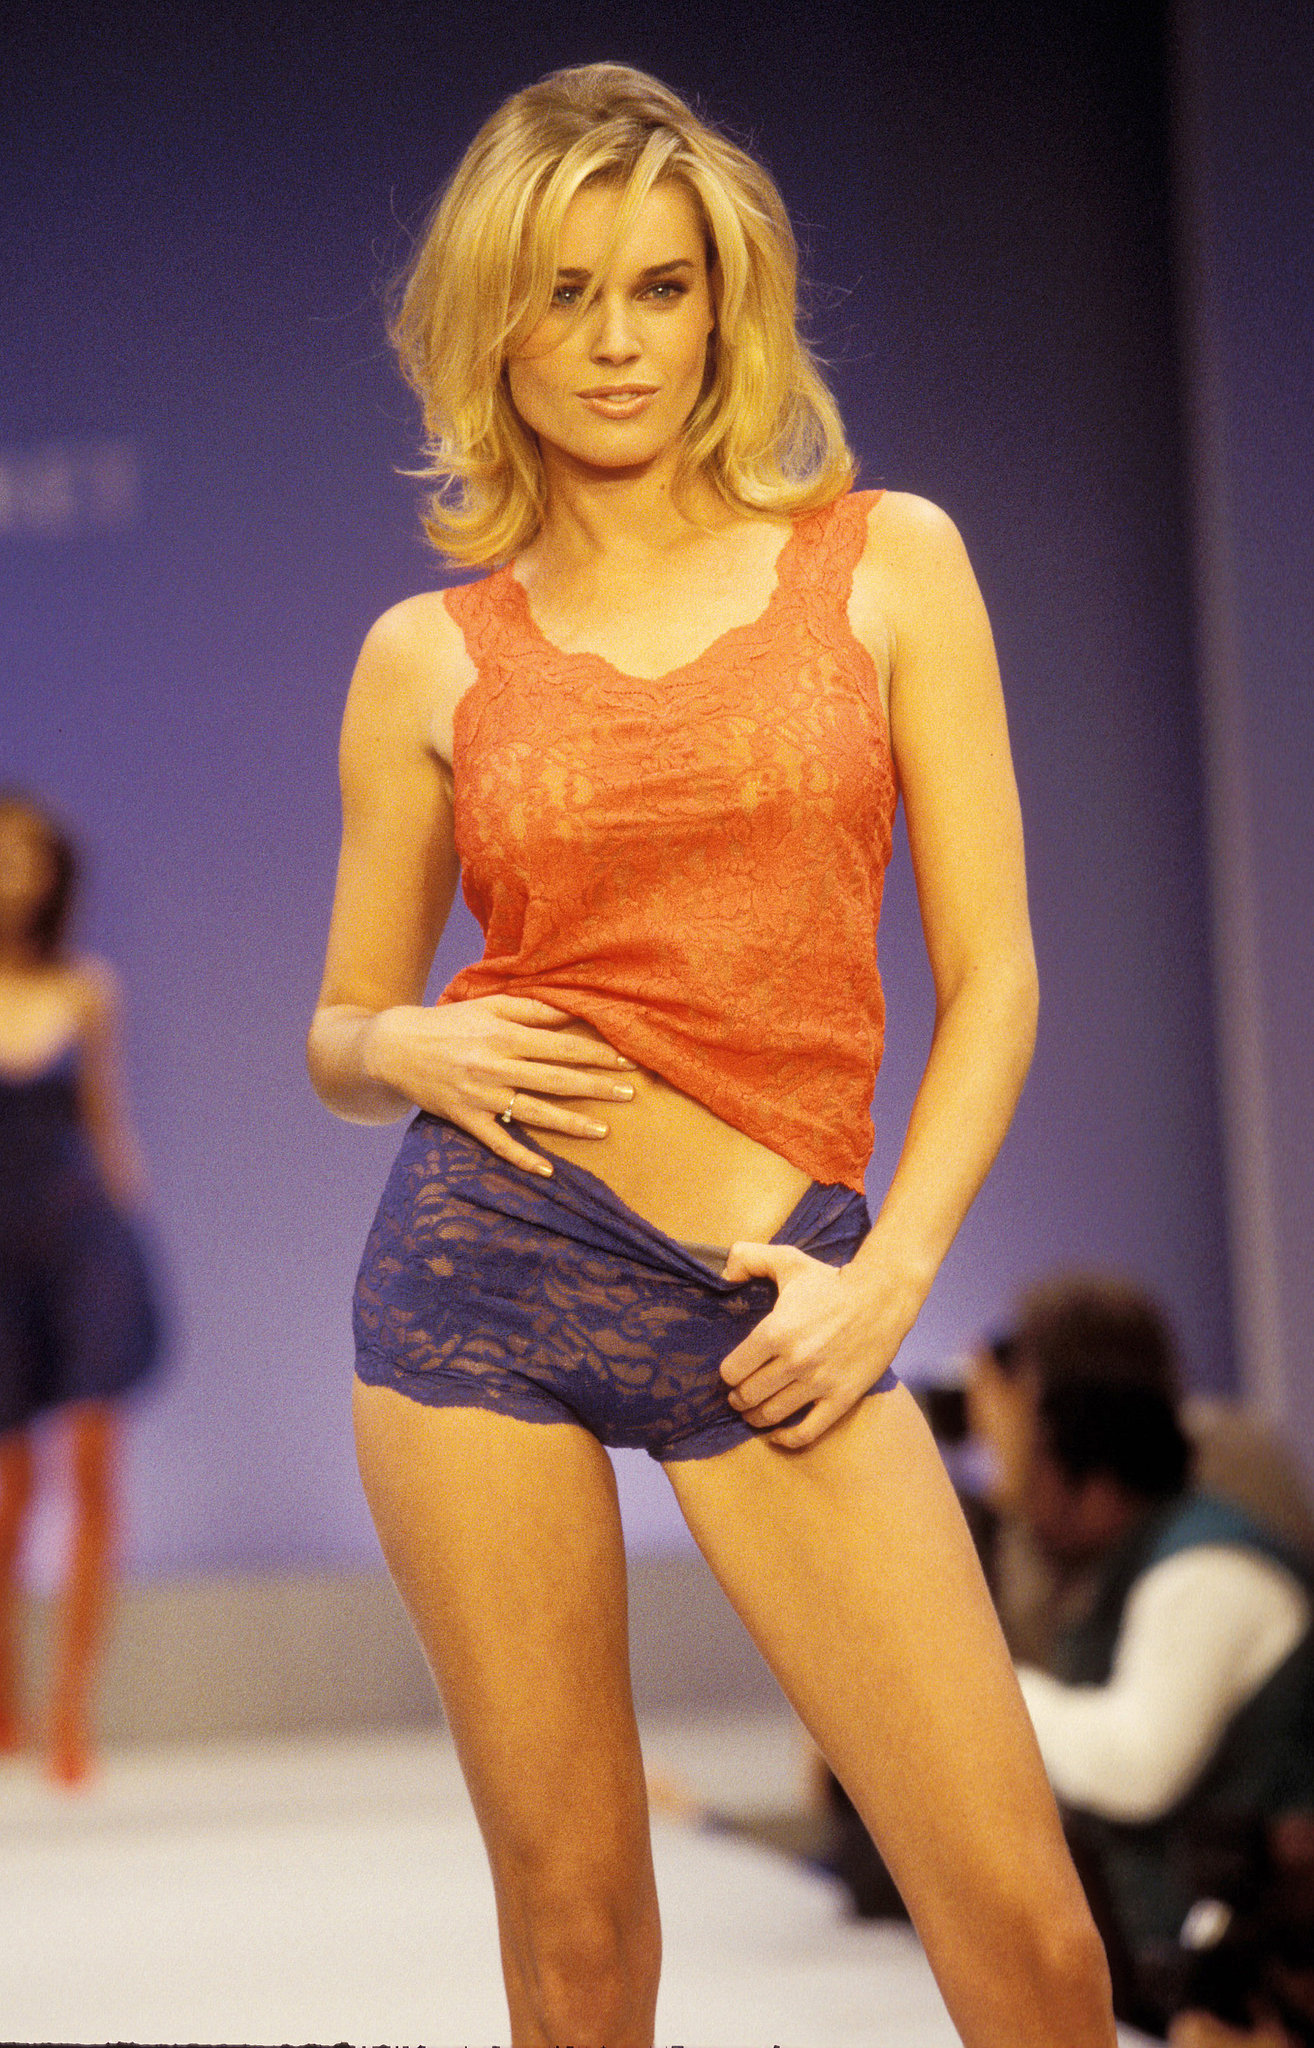 Rebecca Romijn wore a surprisingly modest lace top and boyshorts on the runway in 1997.